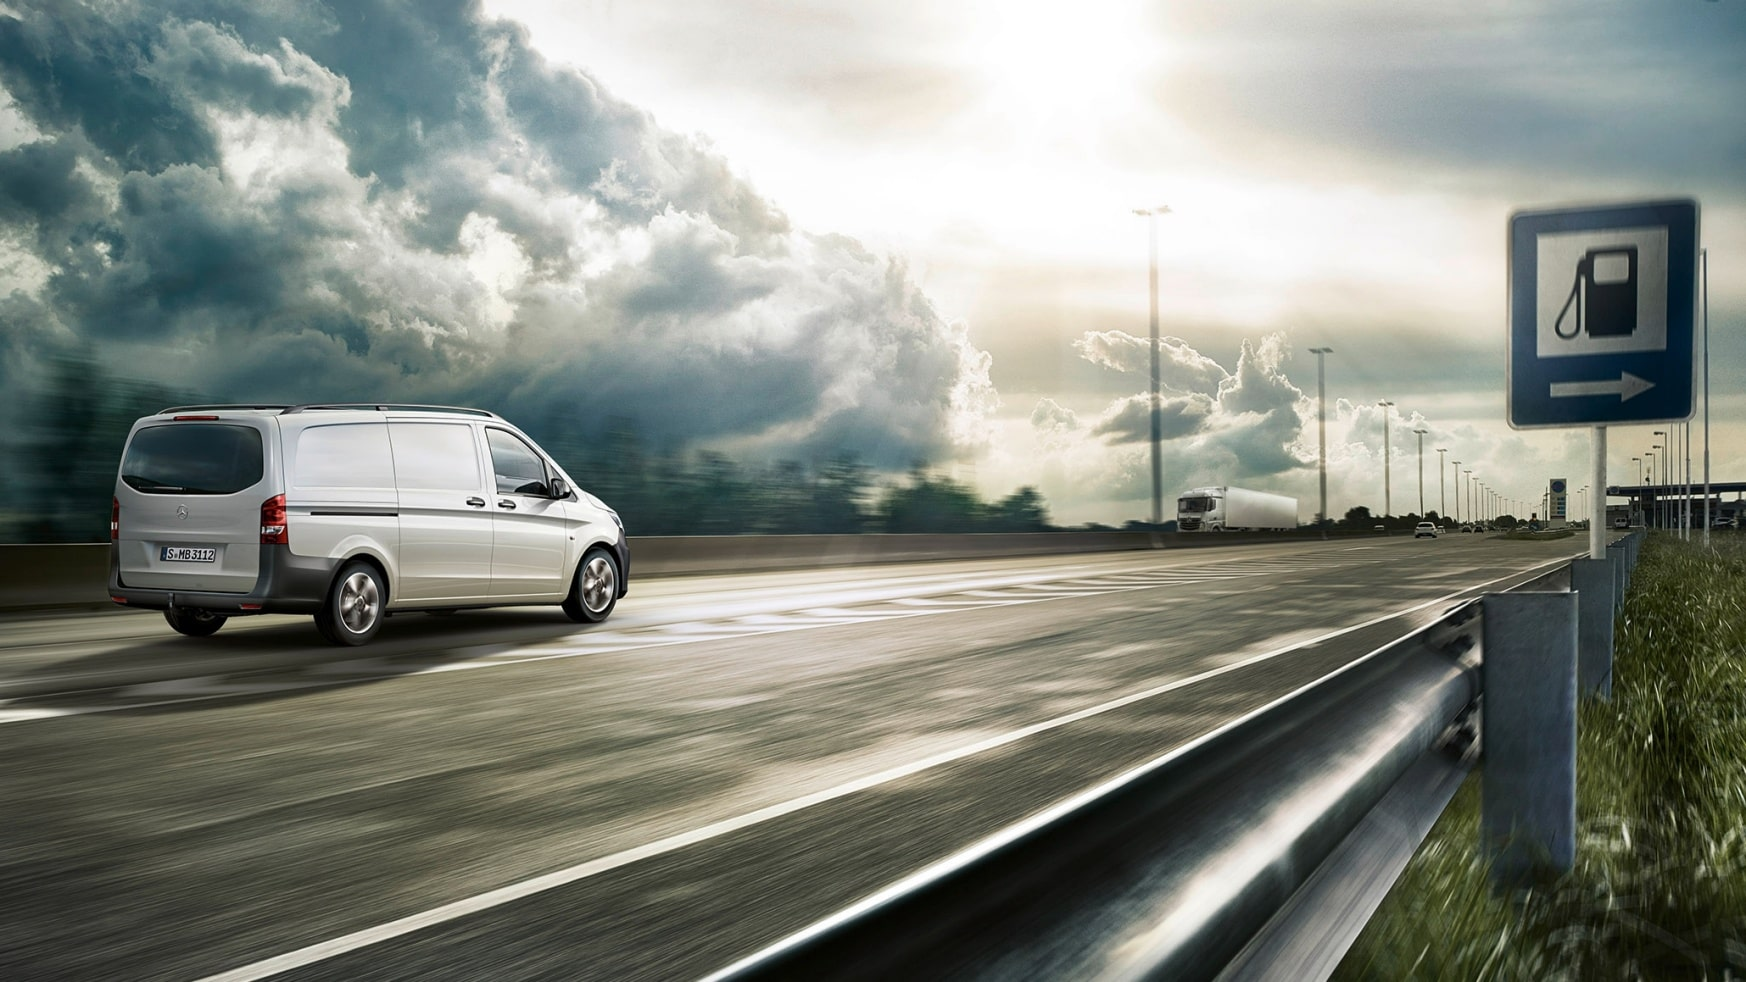 Vito panel van, Highlights, Economy, Efficiency